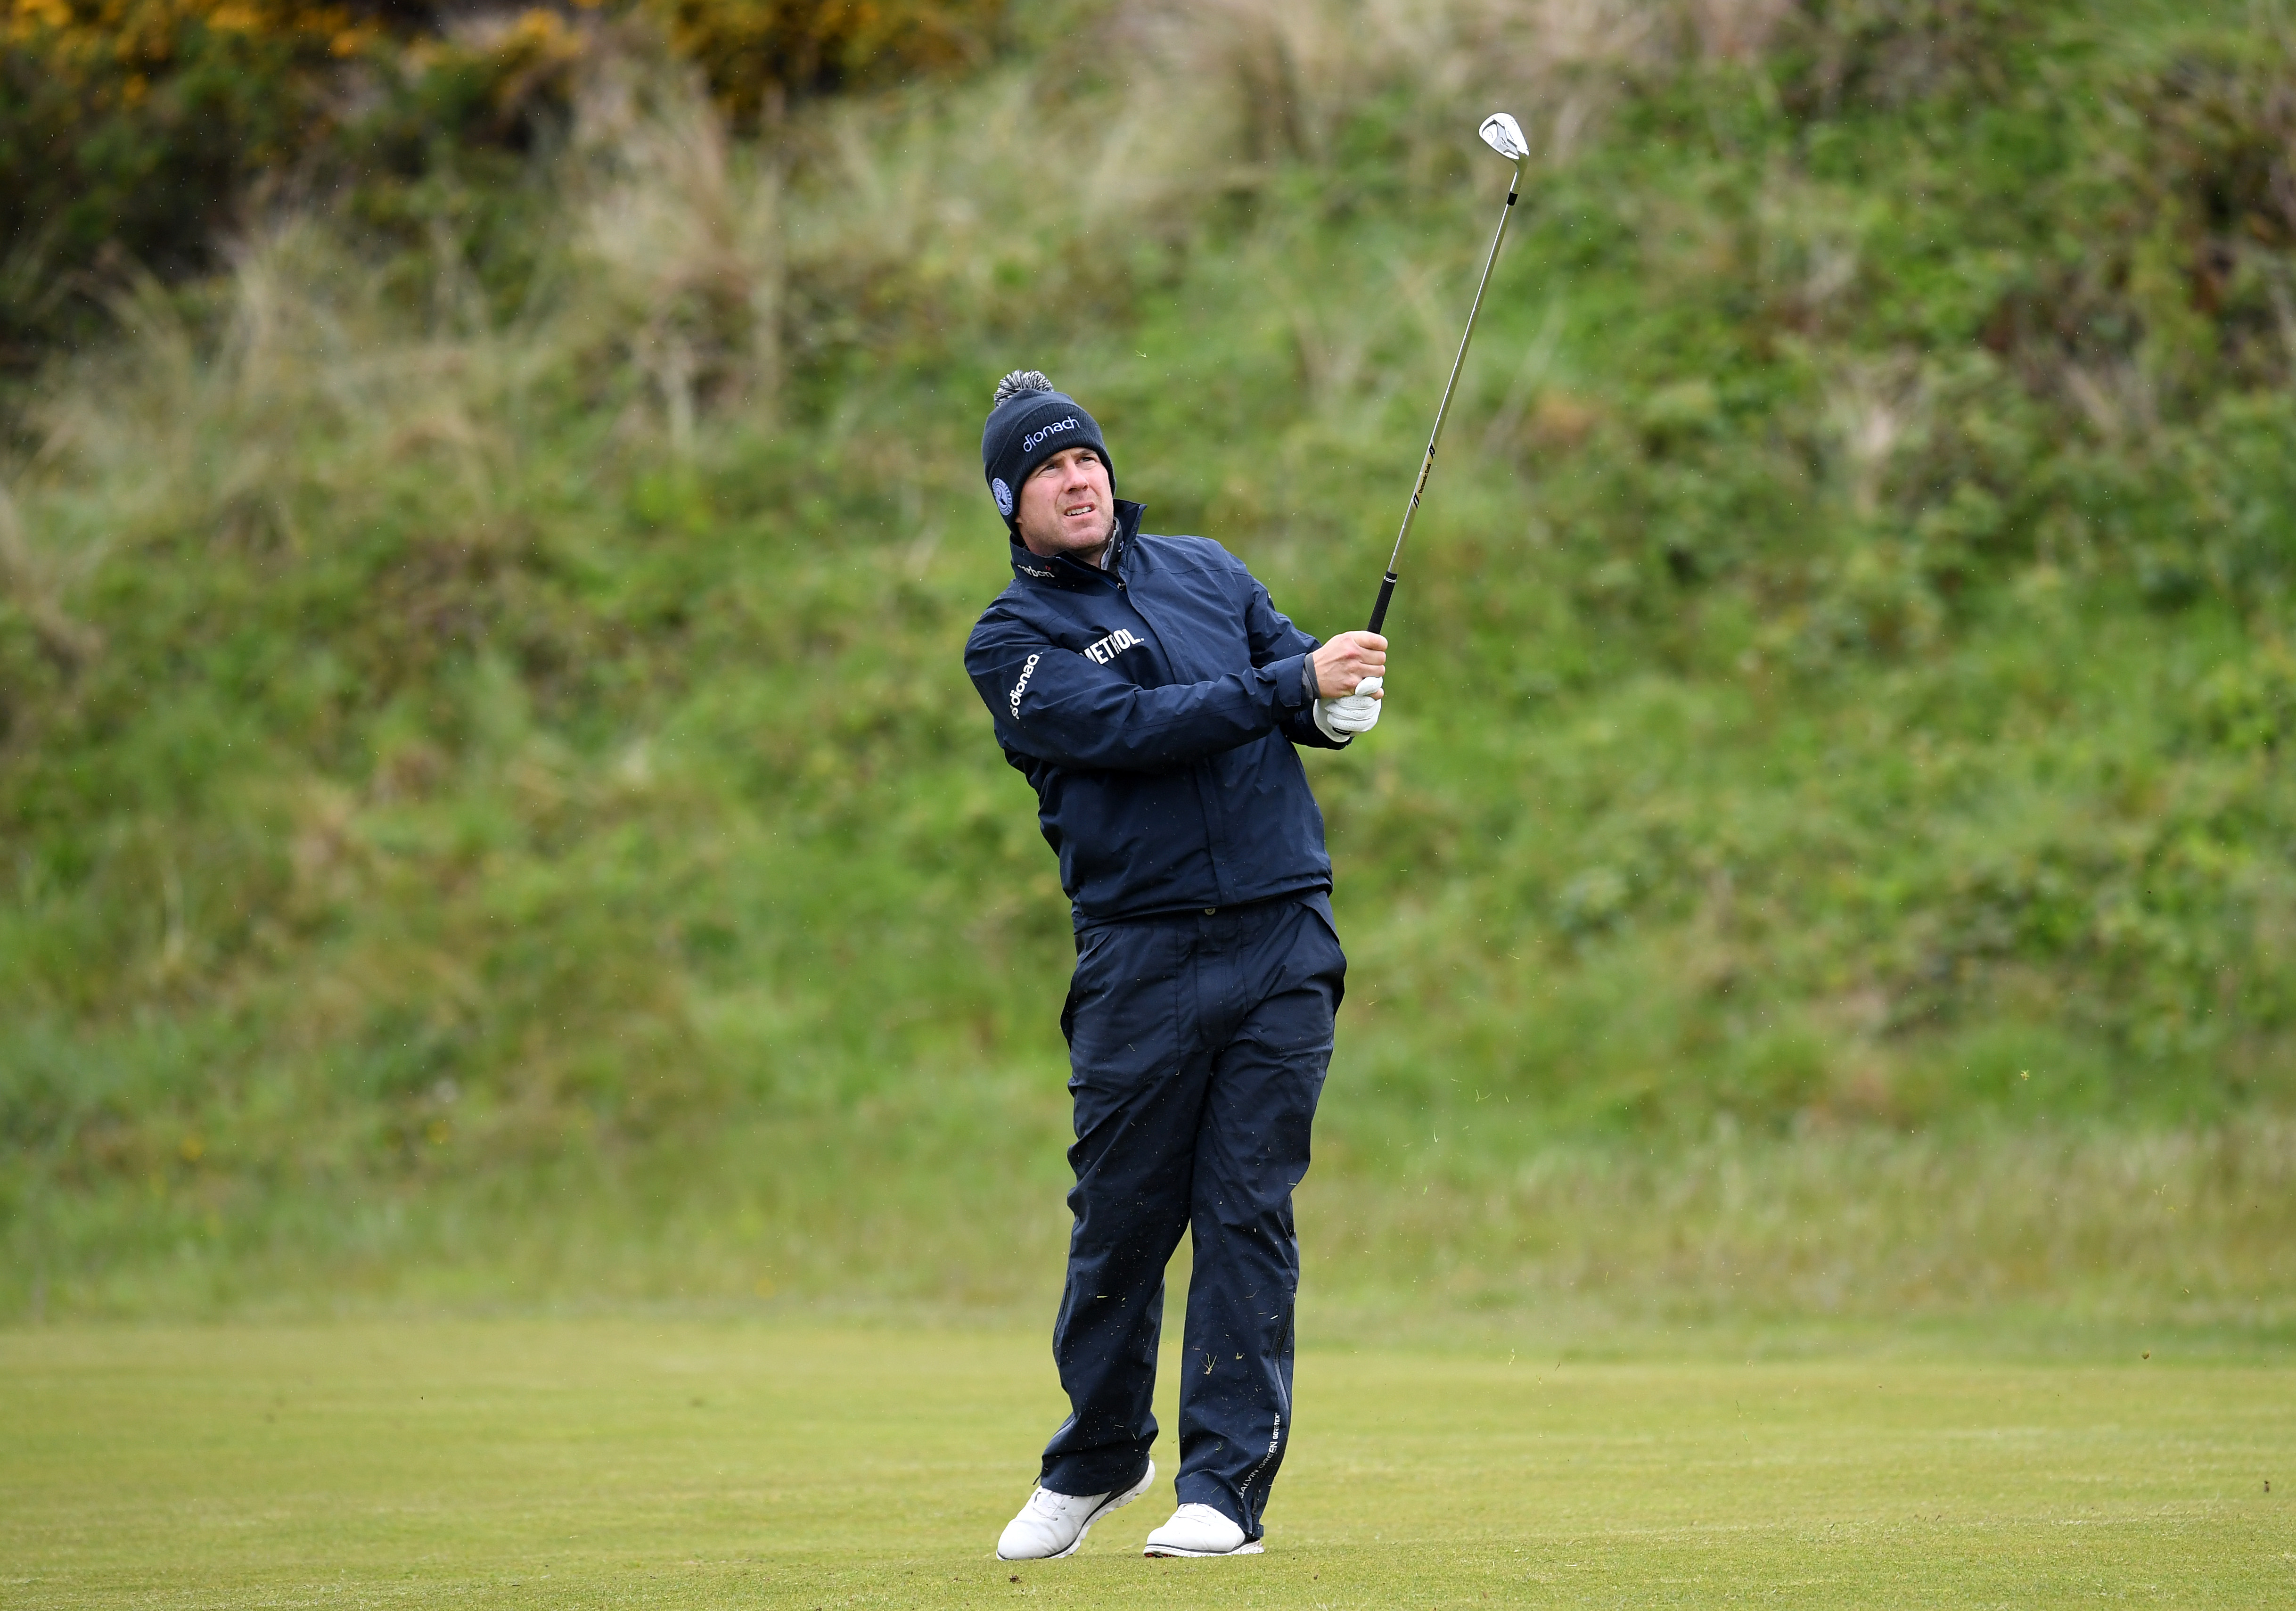 Richie Ramsay plays his 2nd shot on the 8th during Day One of the Betfred British Masters at Hillside Golf Club.